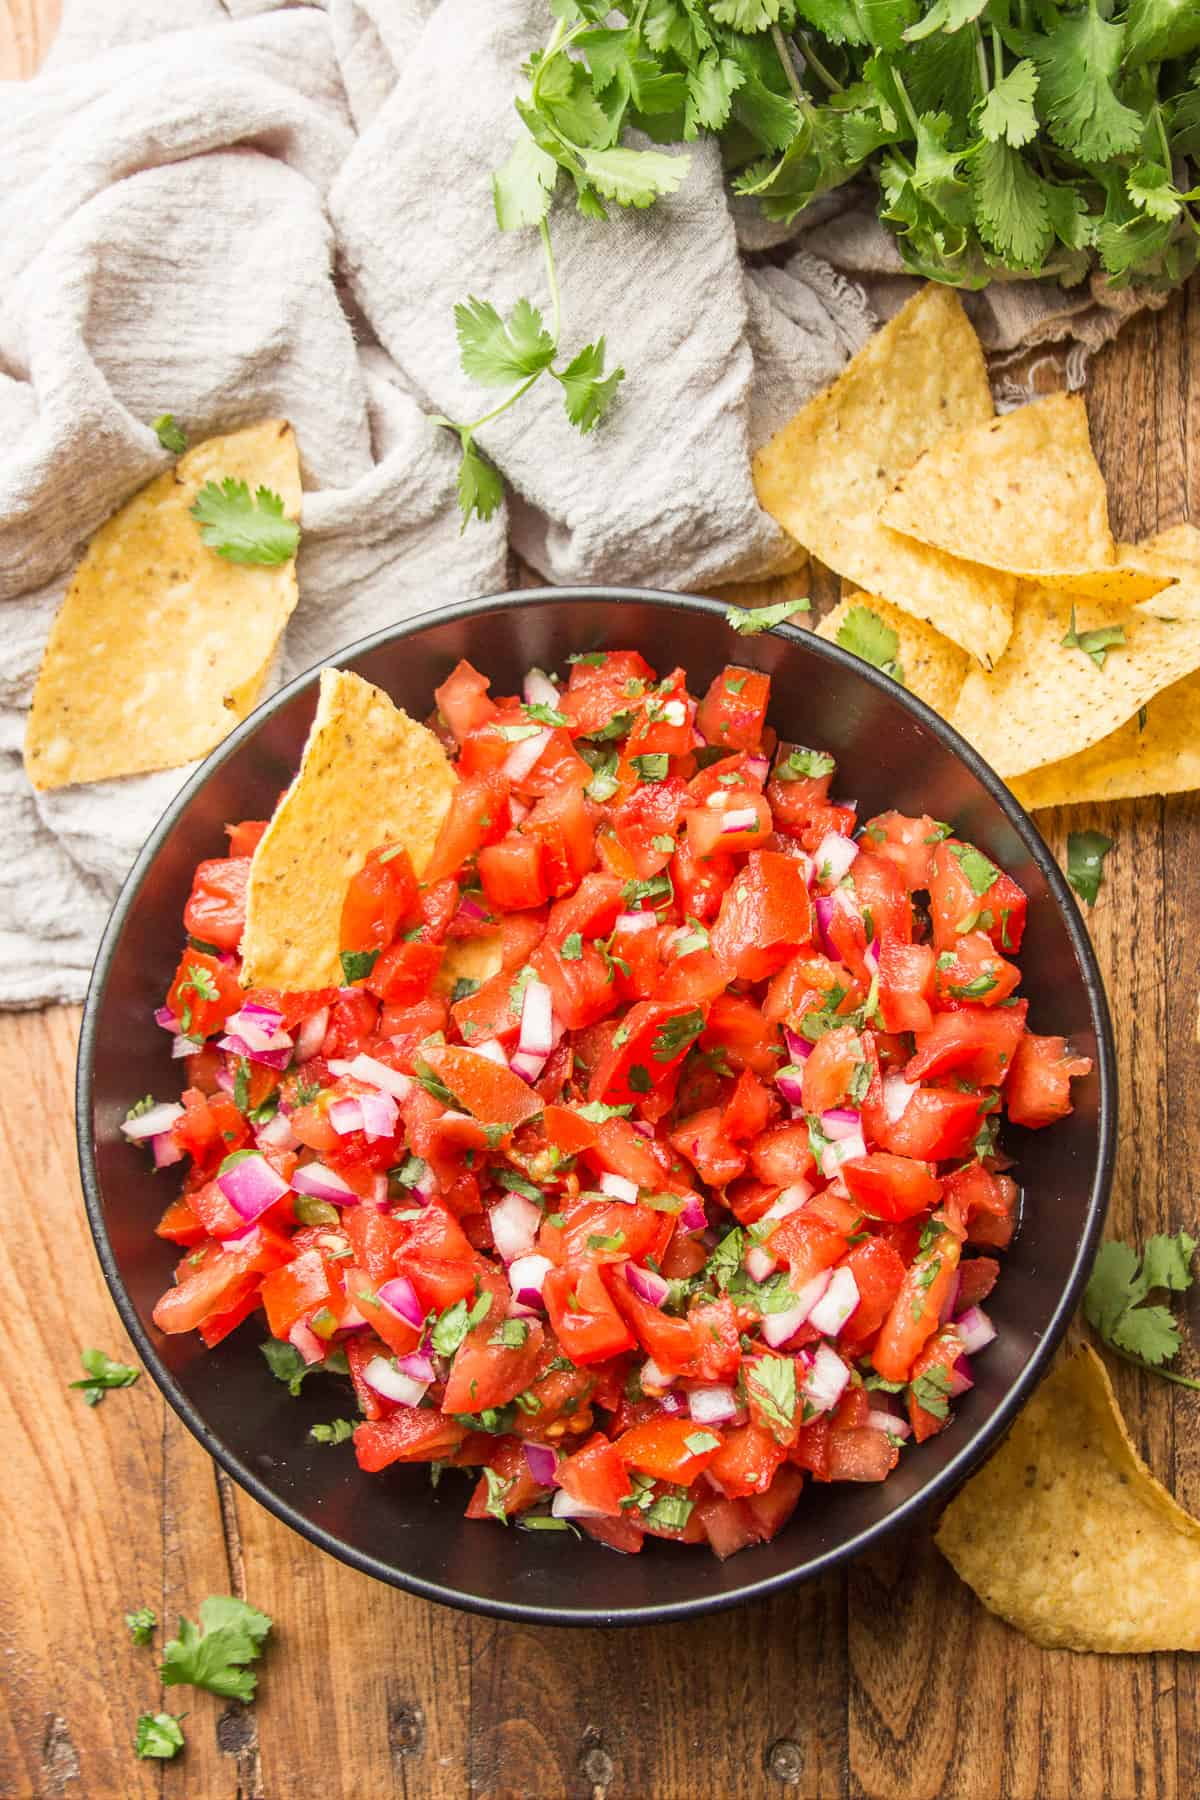 Wooden Surface Set with Bunch of Cilantro, Chips, and Bowl of Pico de Gallo